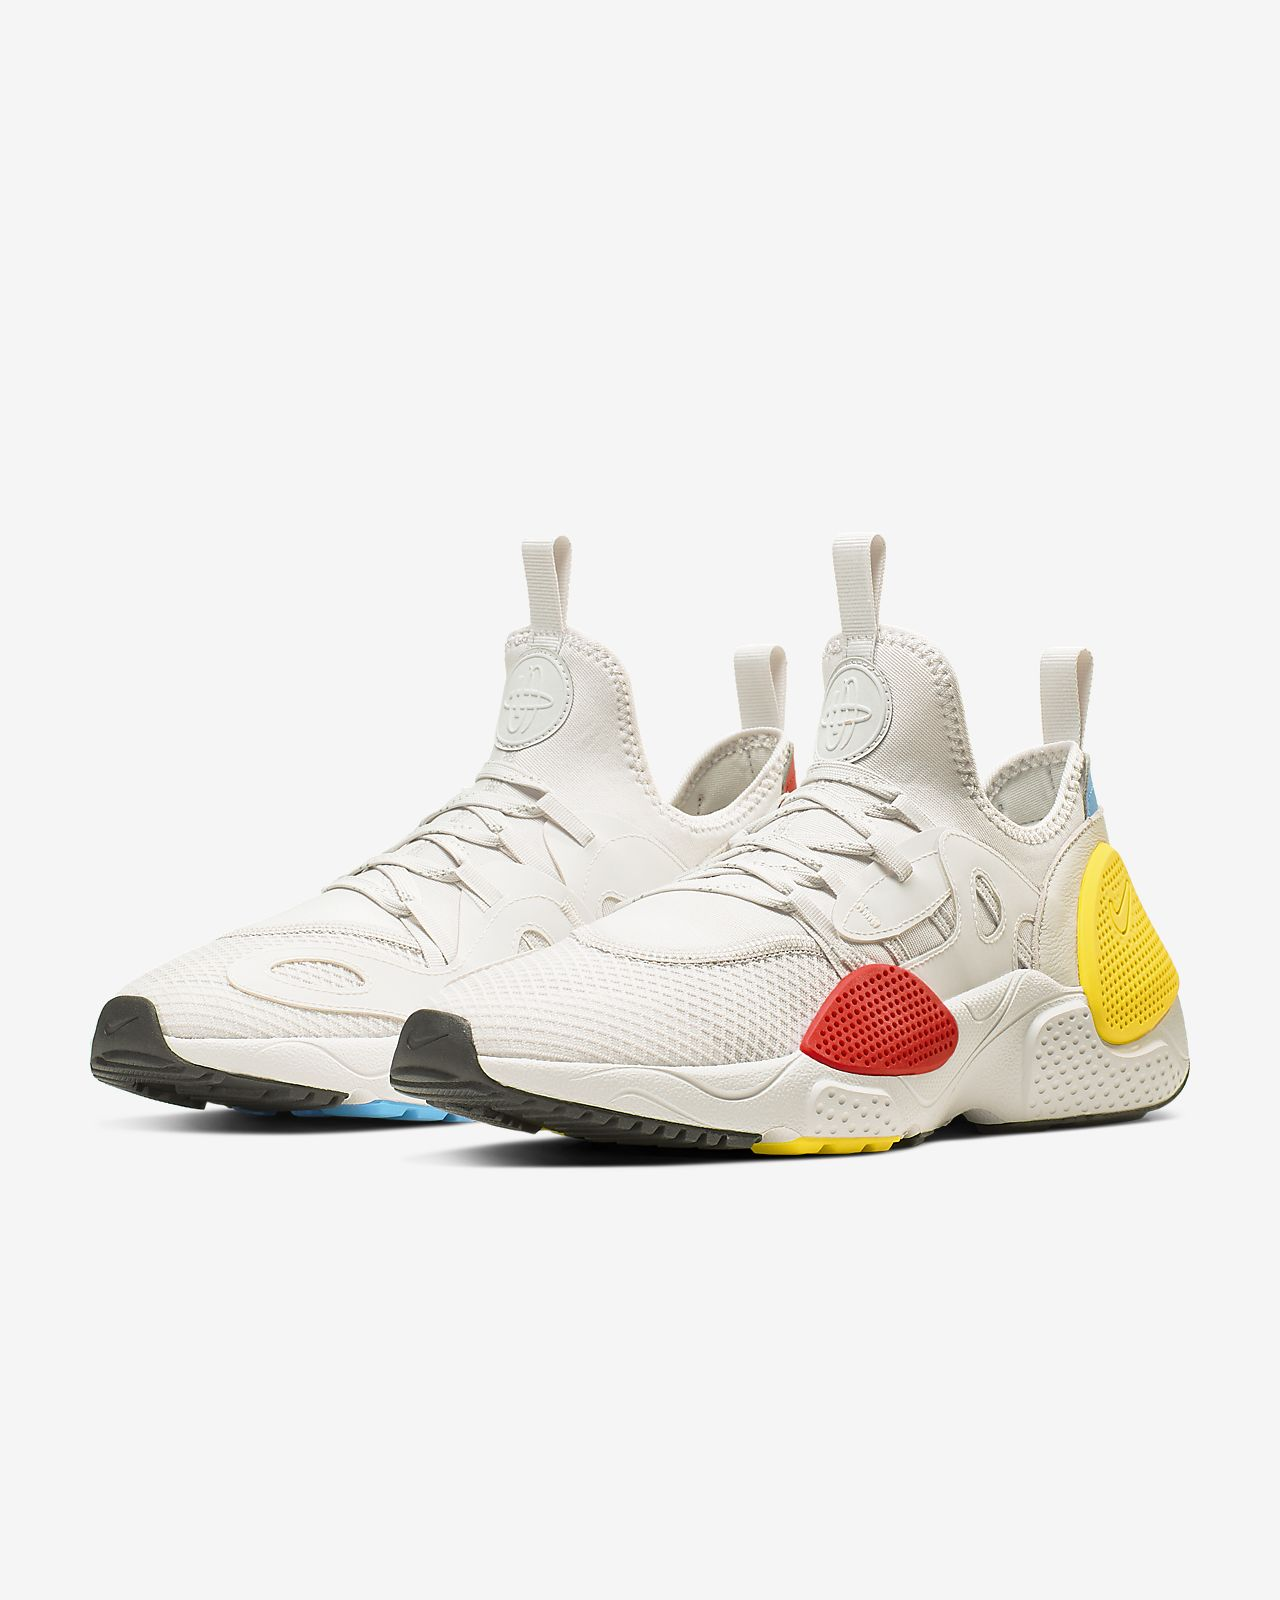 buy popular 0f13a 539c8 Nike Huarache E.D.G.E. Men's Shoe